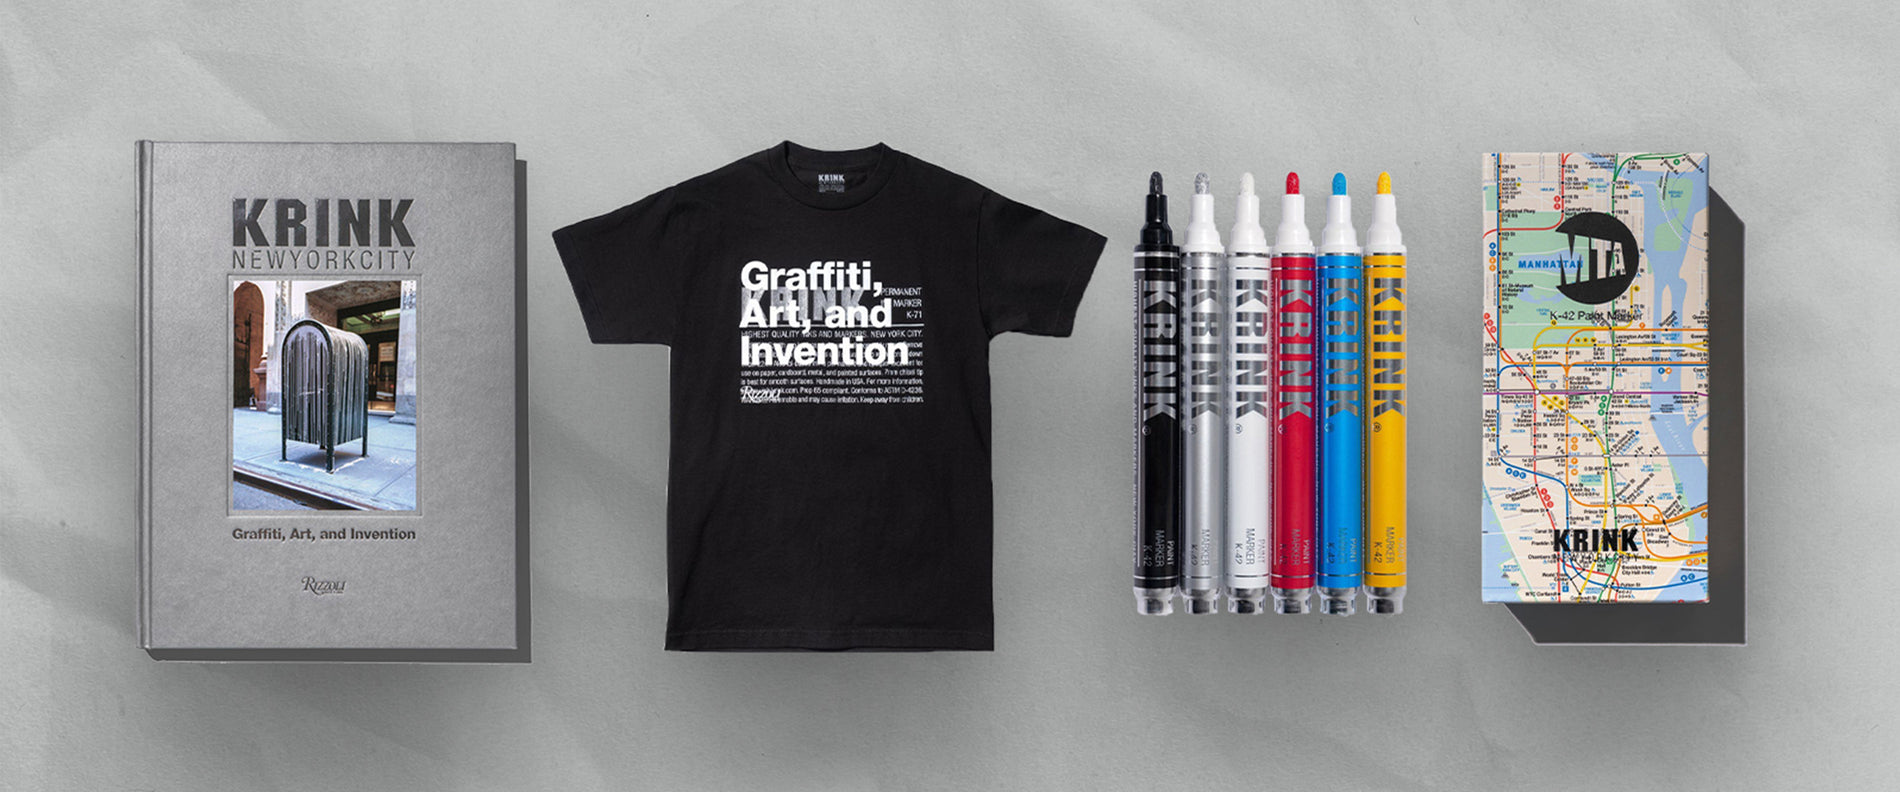 How Krink's Craig Costello Turned A Passion For Graffiti Into A Global Business